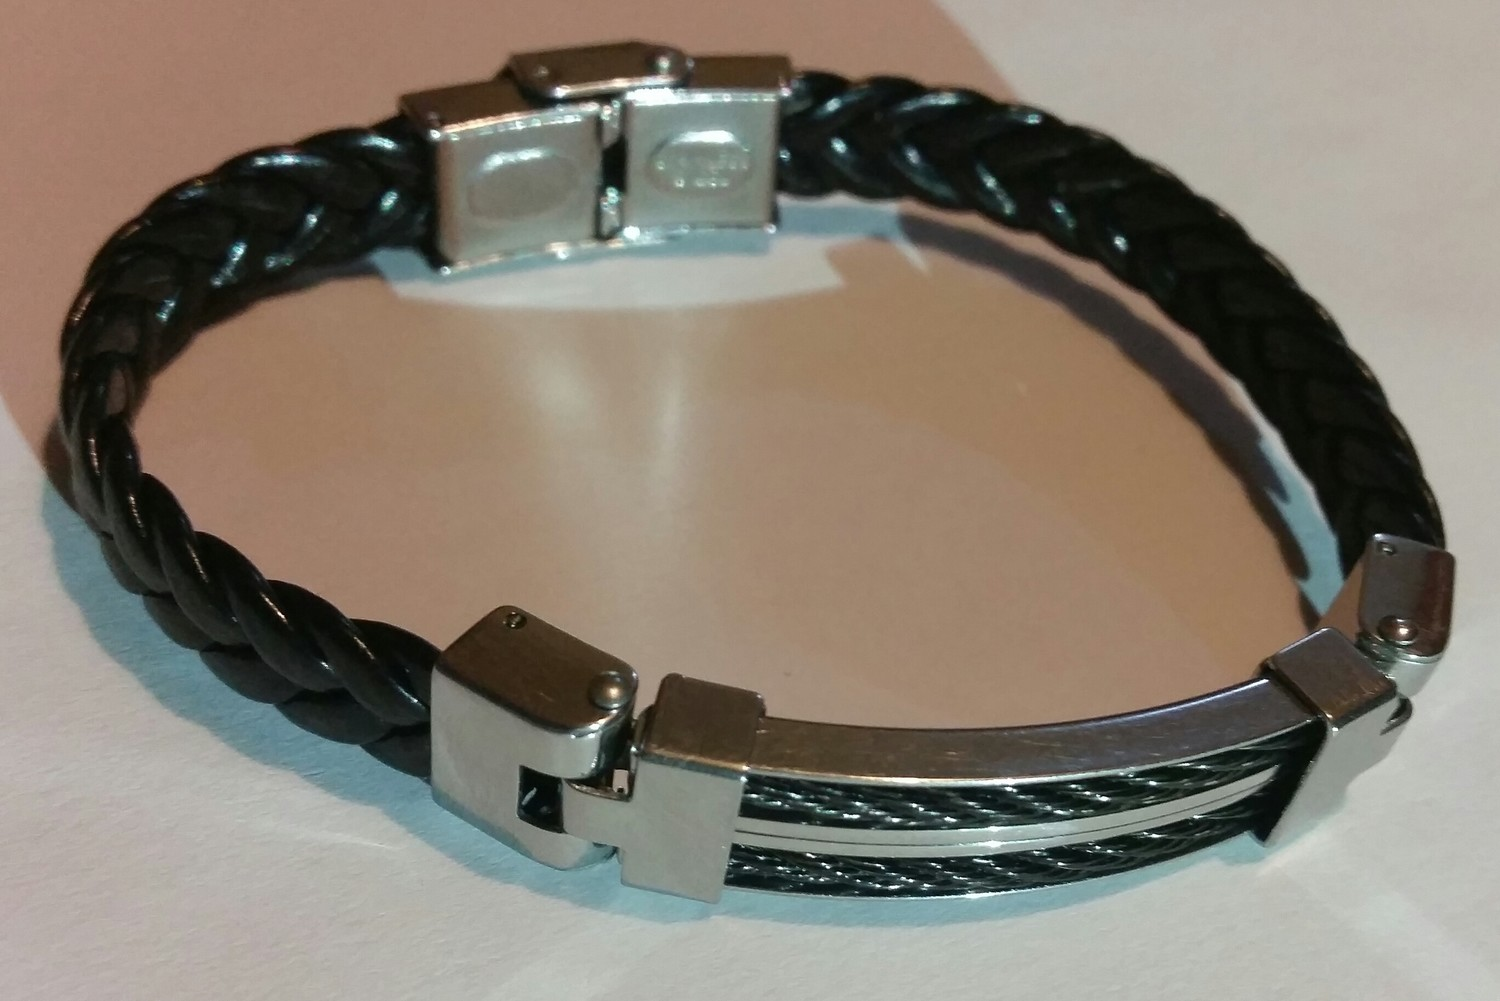 Stainless/ Double Black String Bracelet - Medium 22.5 CM - ShopEasy